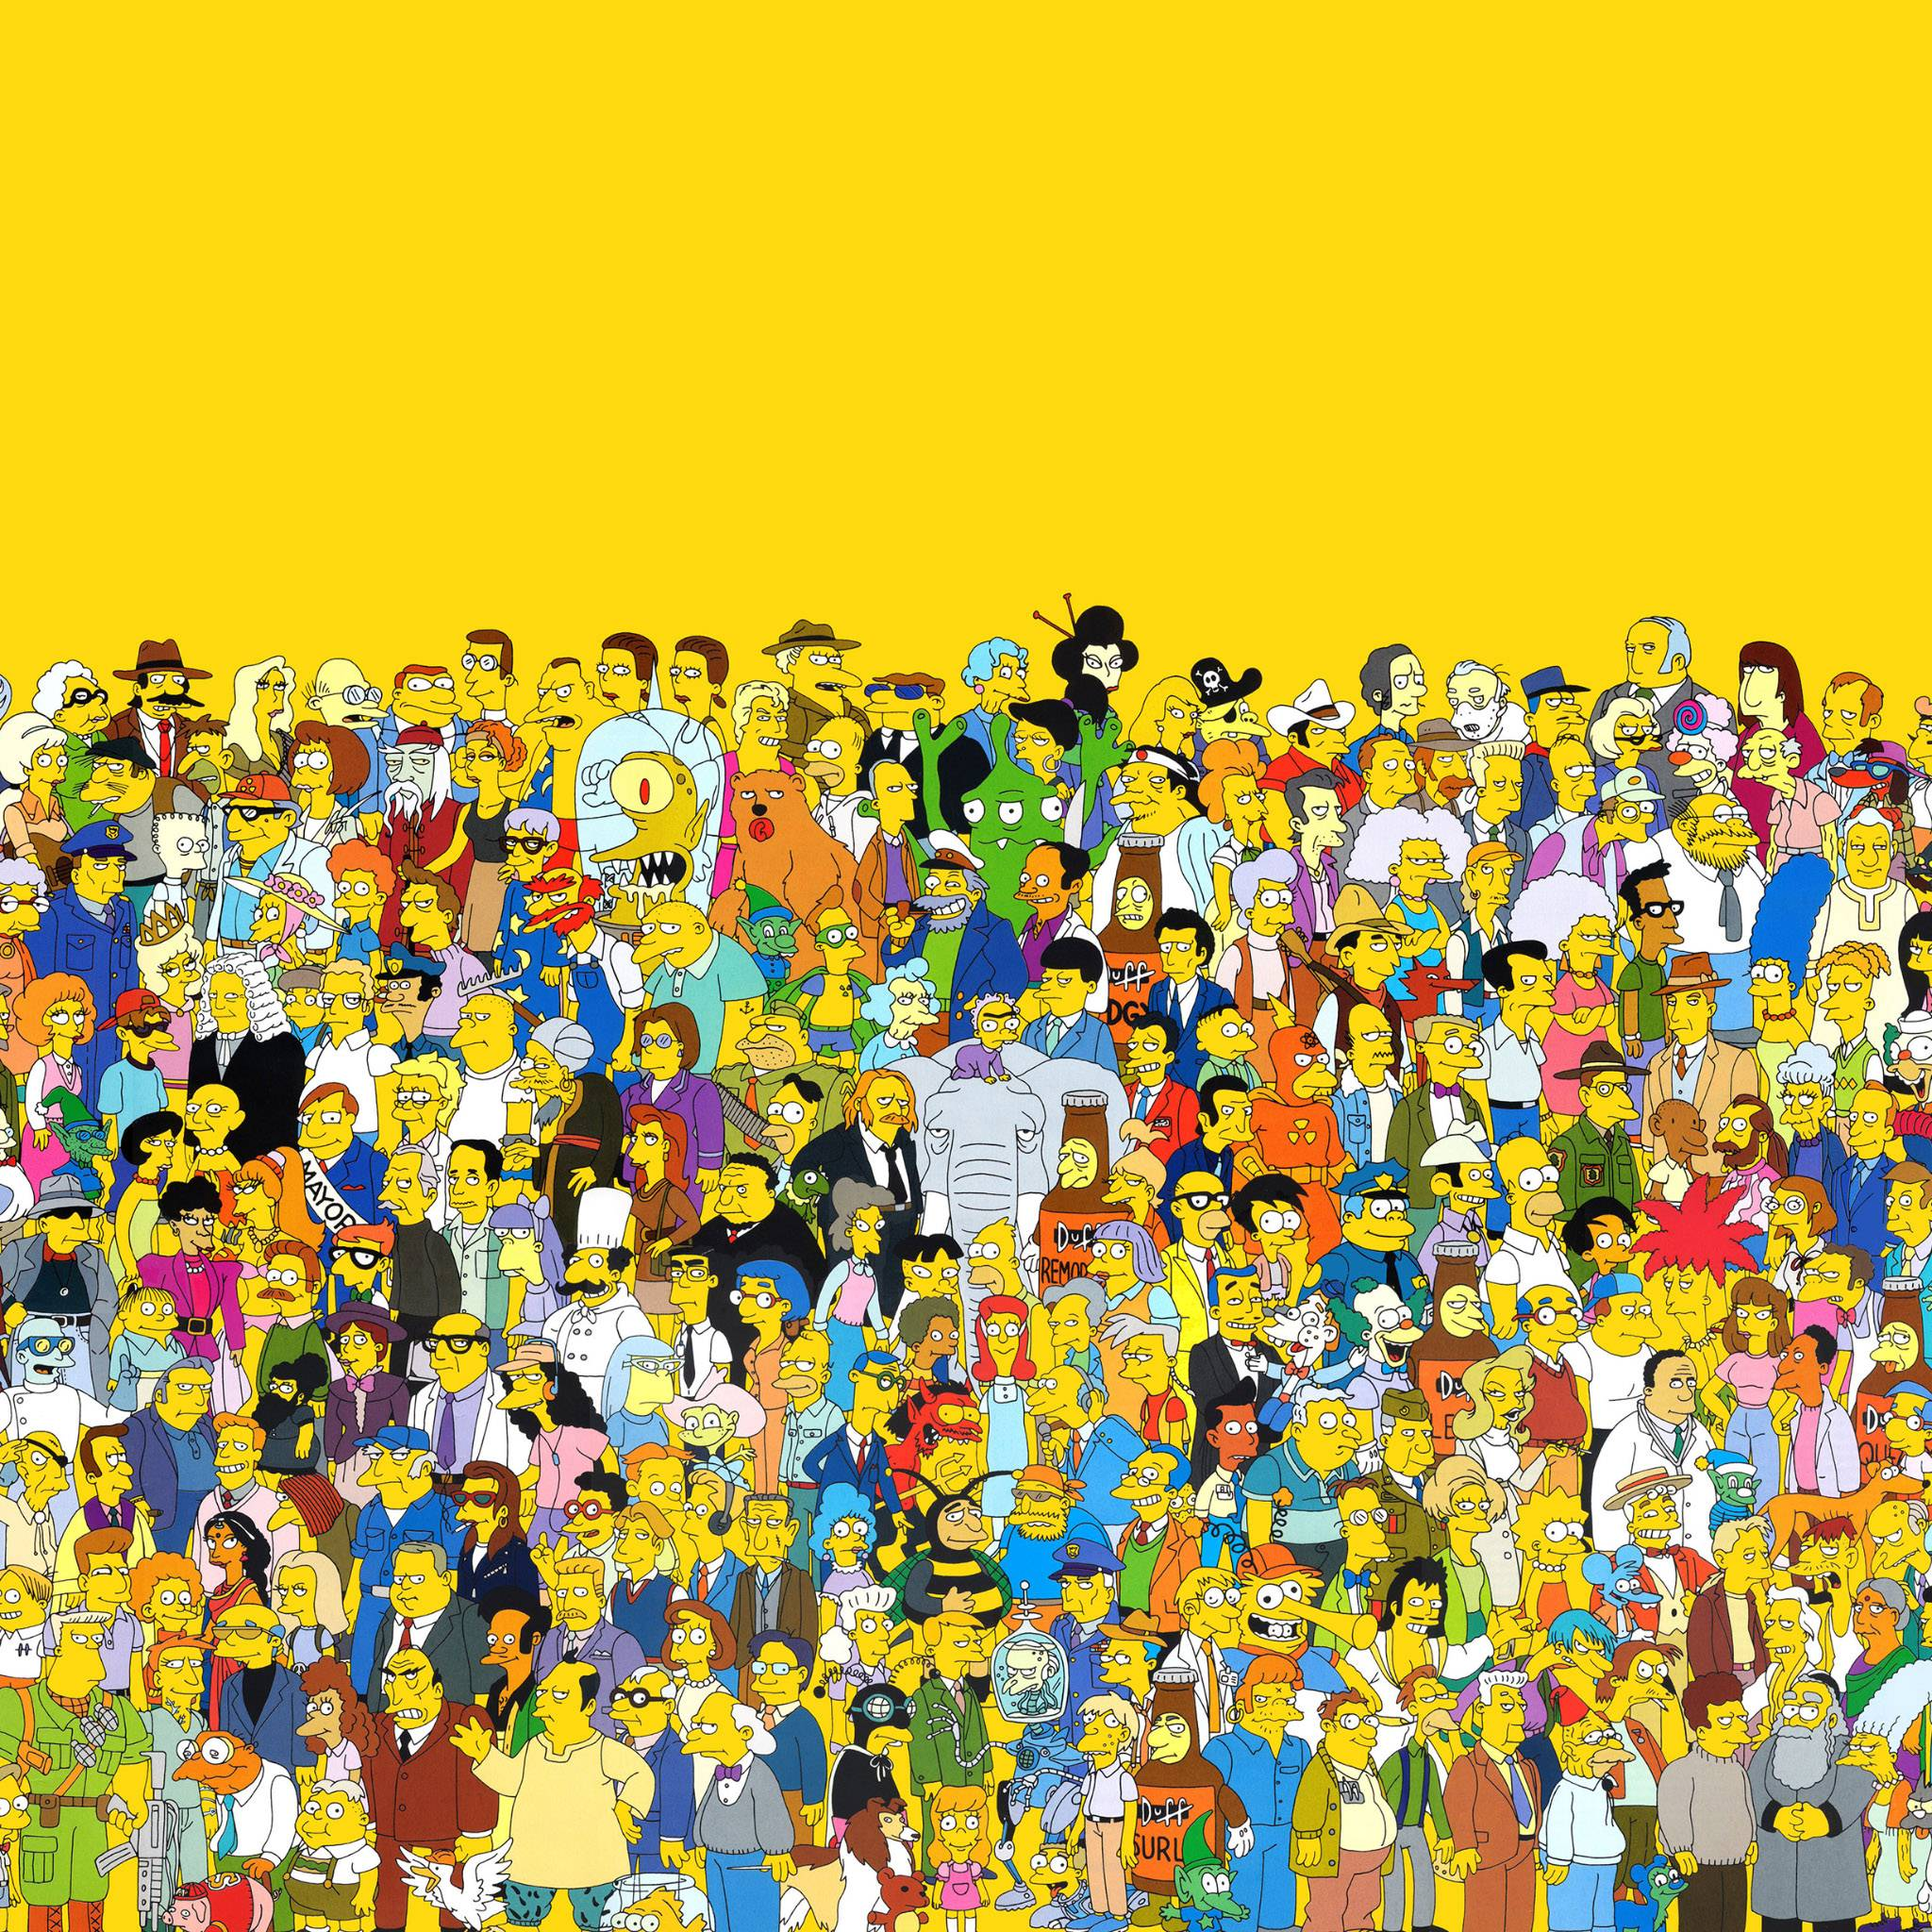 Wallpaper iphone simpsons - Freeios7 The Simpsons Parallax Hd Iphone Ipad Wallpaper